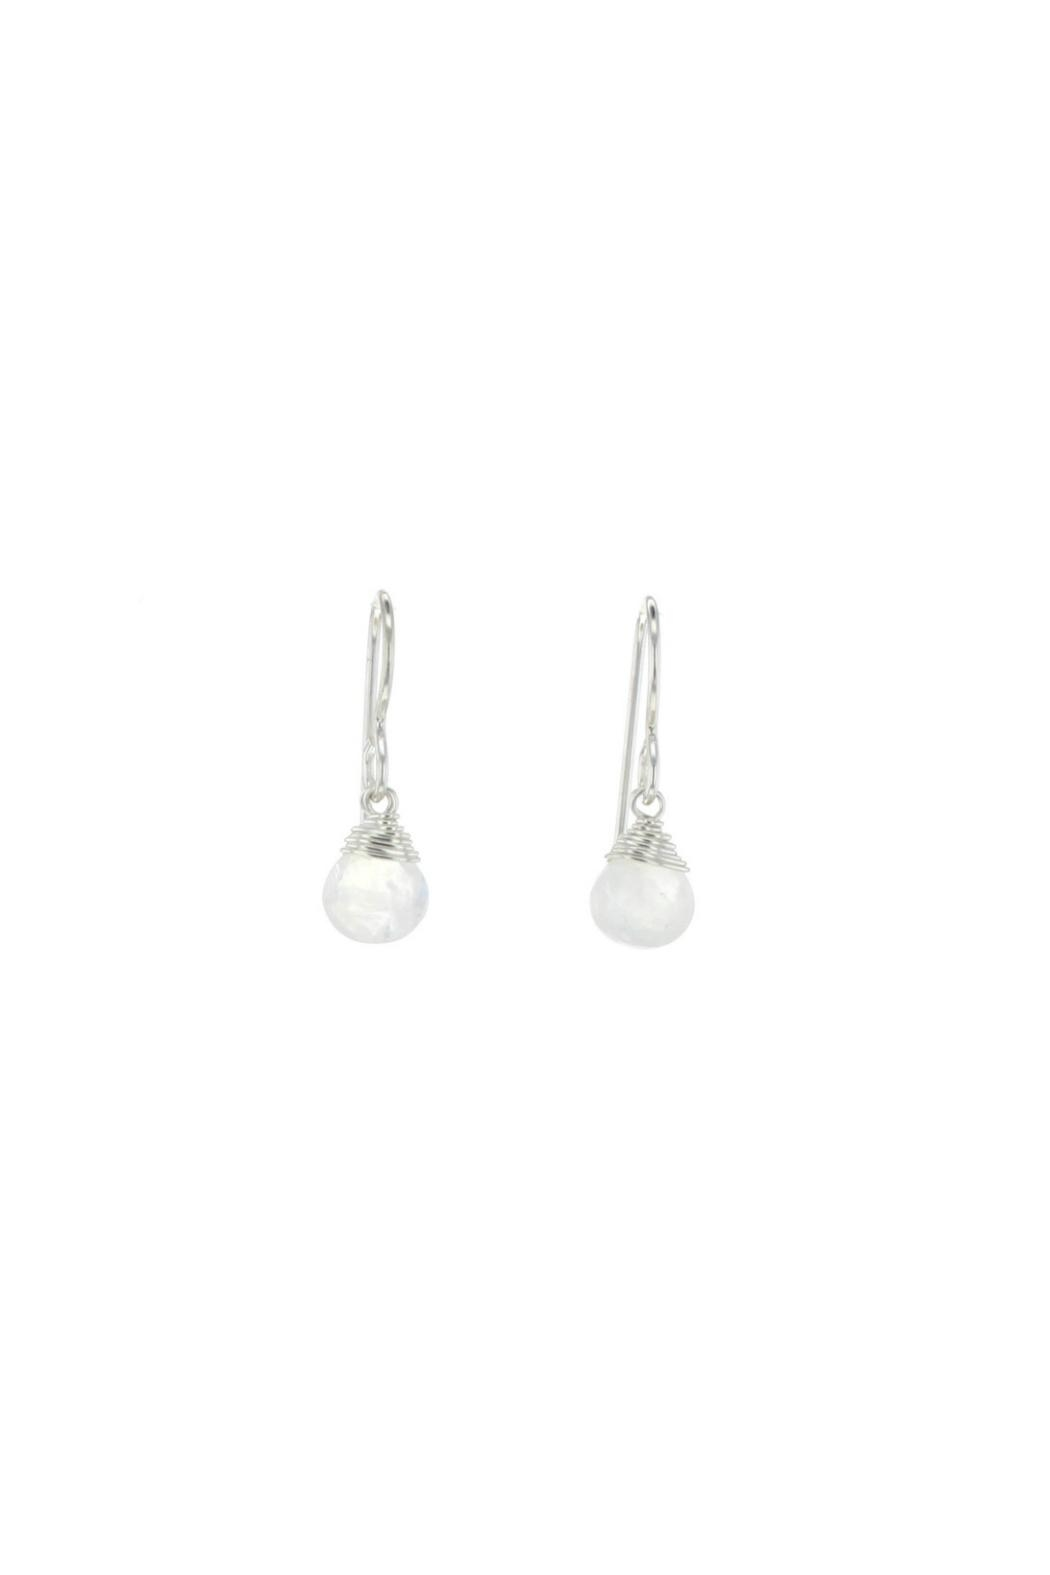 Gemma Collection Silver Moonstone Earrings - Main Image